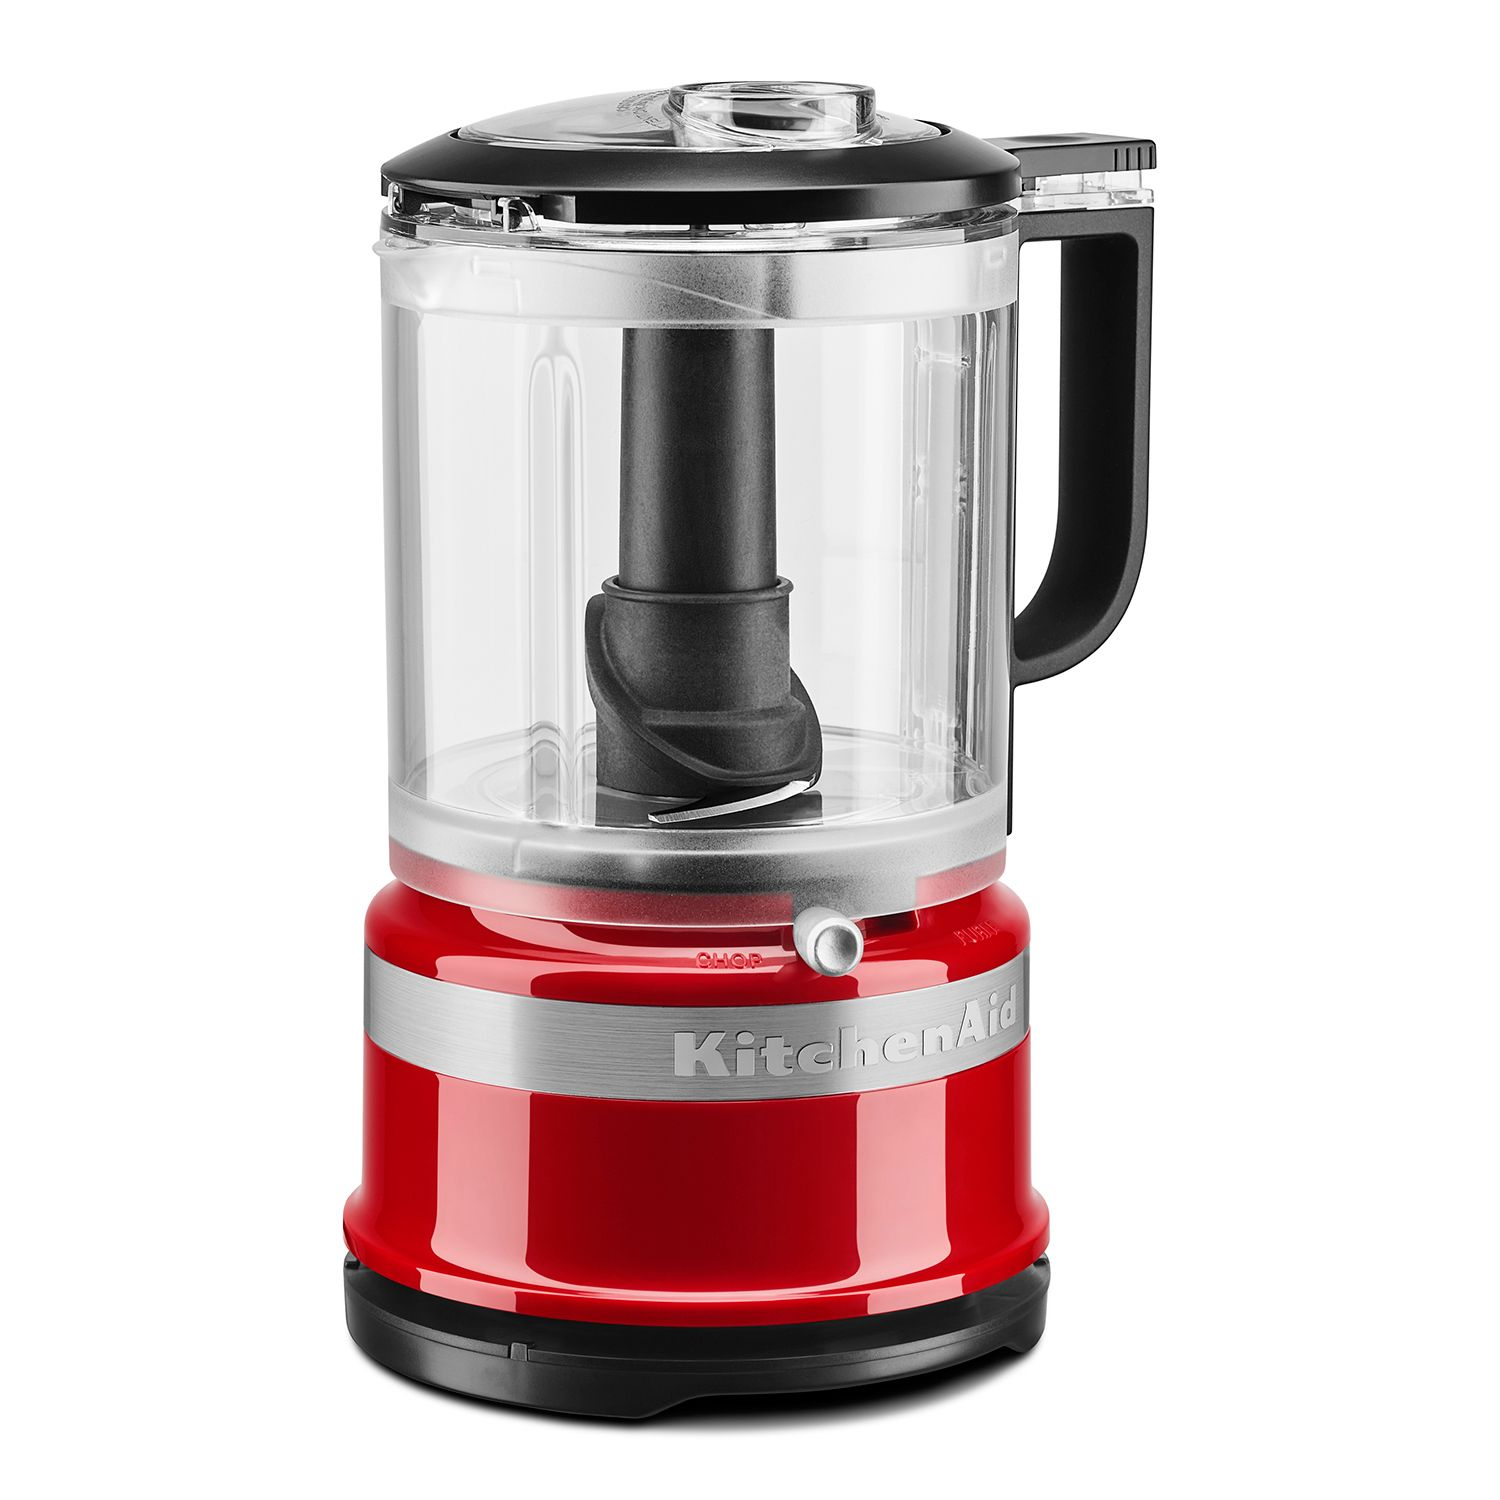 KitchenAid KFC0516 5 Cup Food Chopper